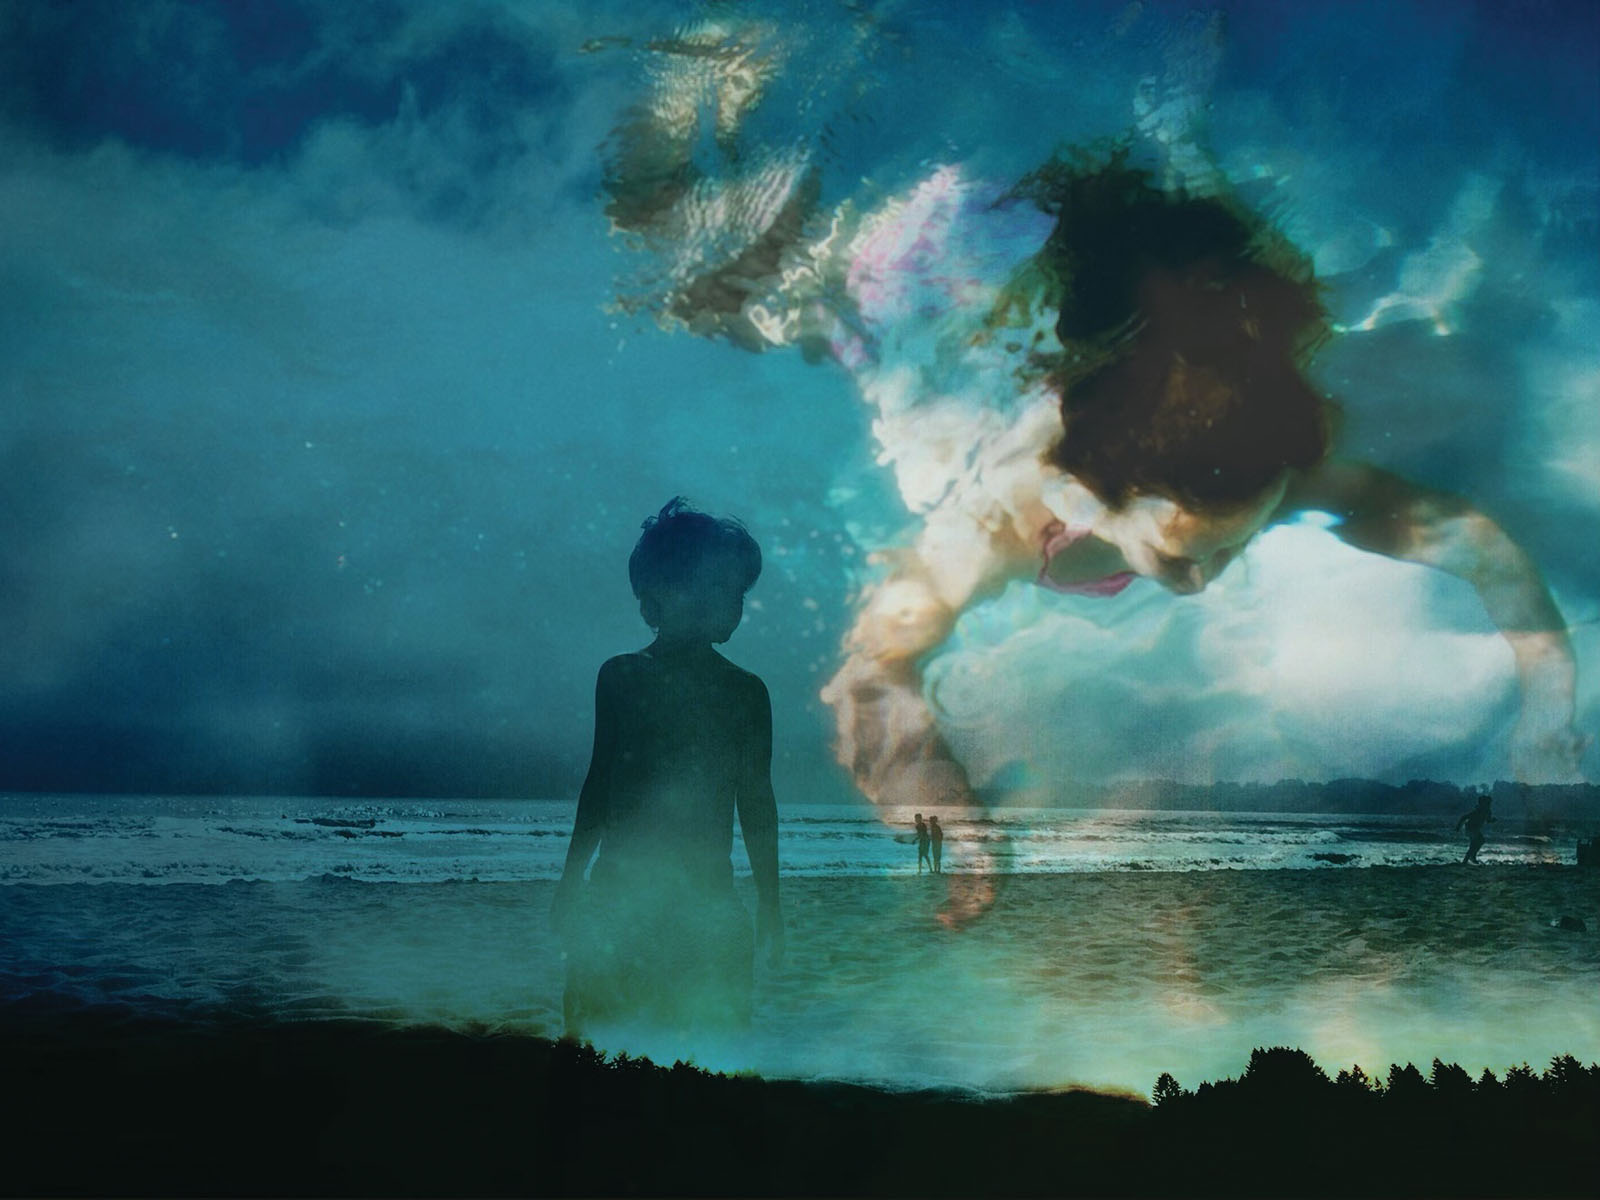 Creative double exposure photo of boy at beach and boy swimming